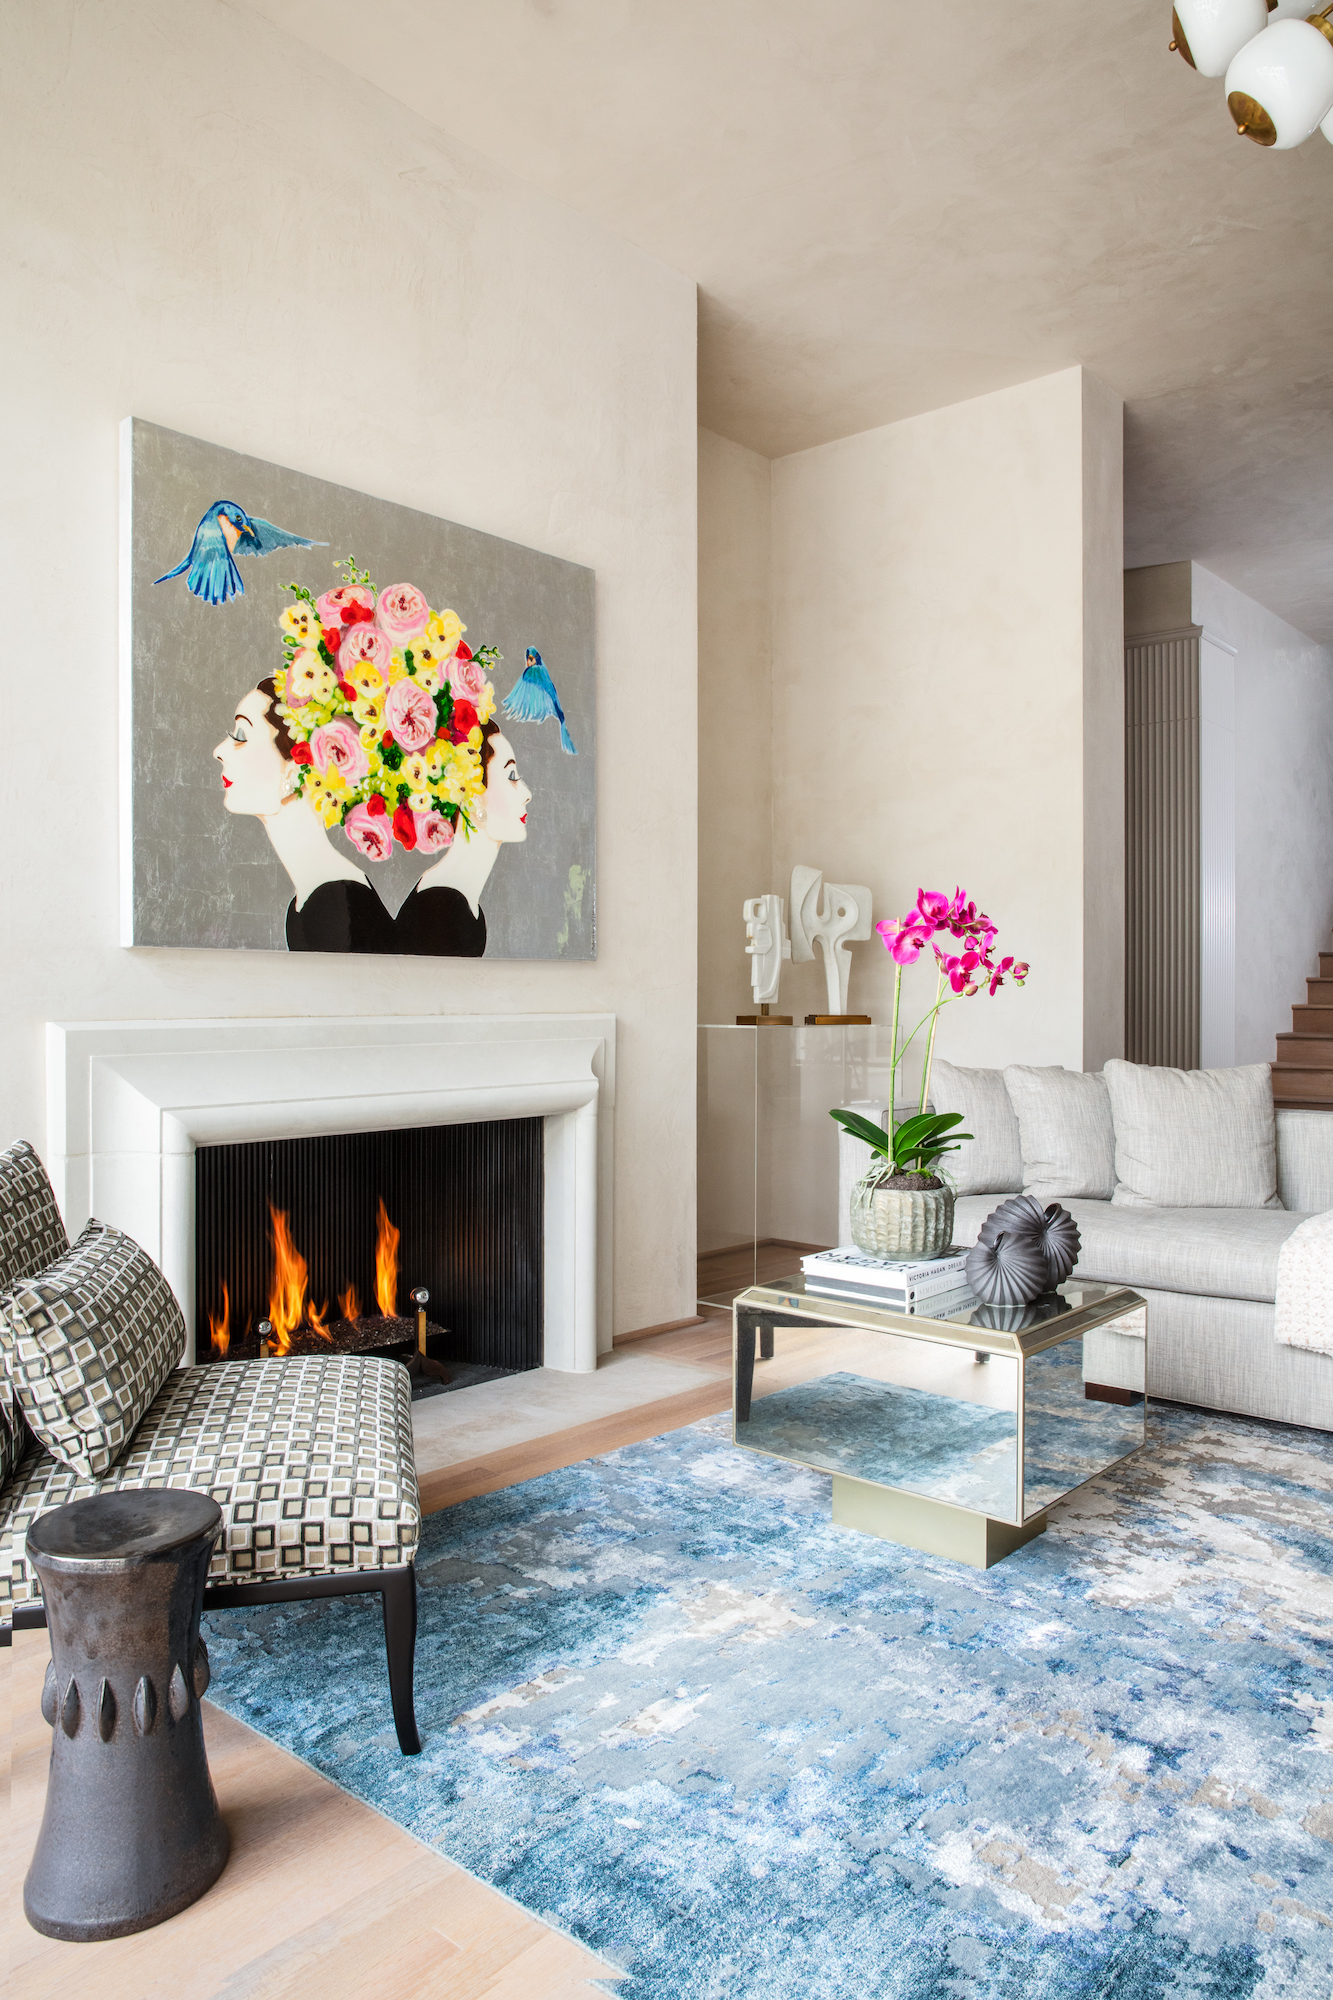 Ashley Longshore modern art inspires the blue rug-interior design firm Carlton Edwards